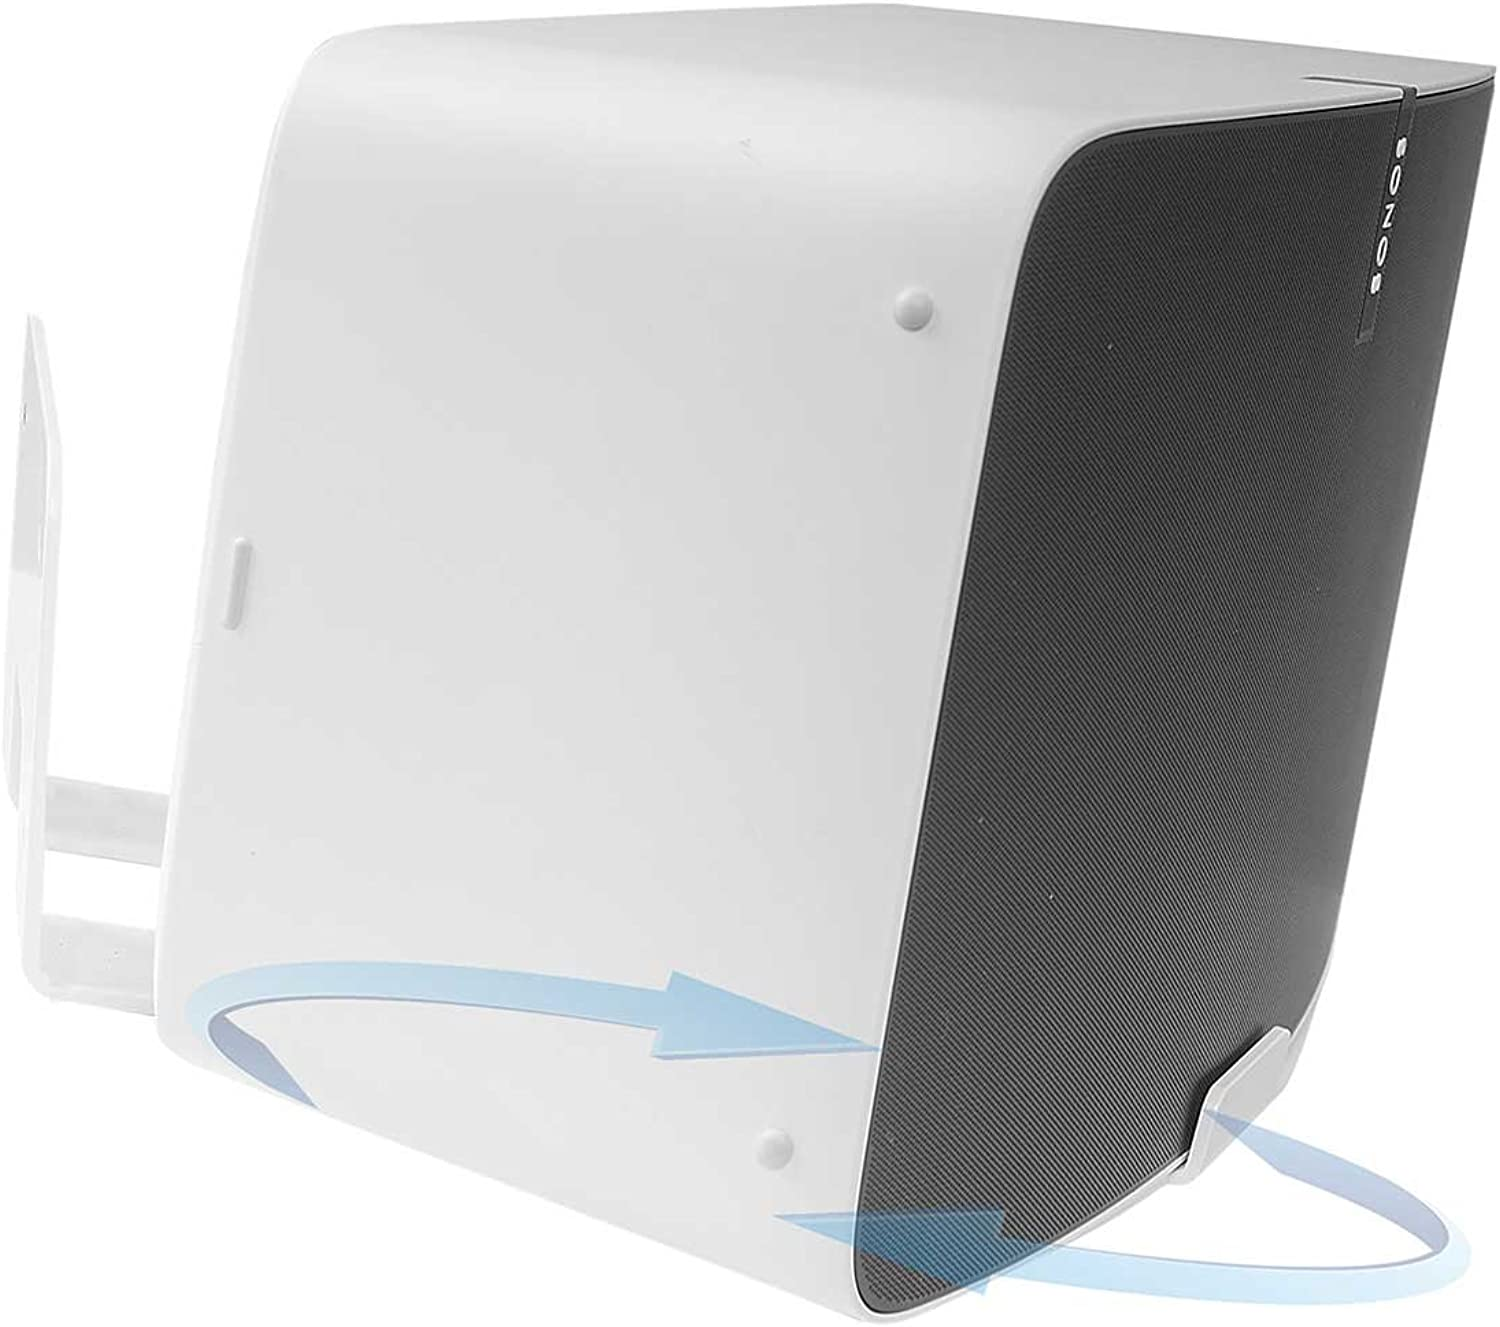 Vebos Wall Mount Sonos Play 5 gen 2 redatable White 20 Degrees - Compatible with Sonos Play 5